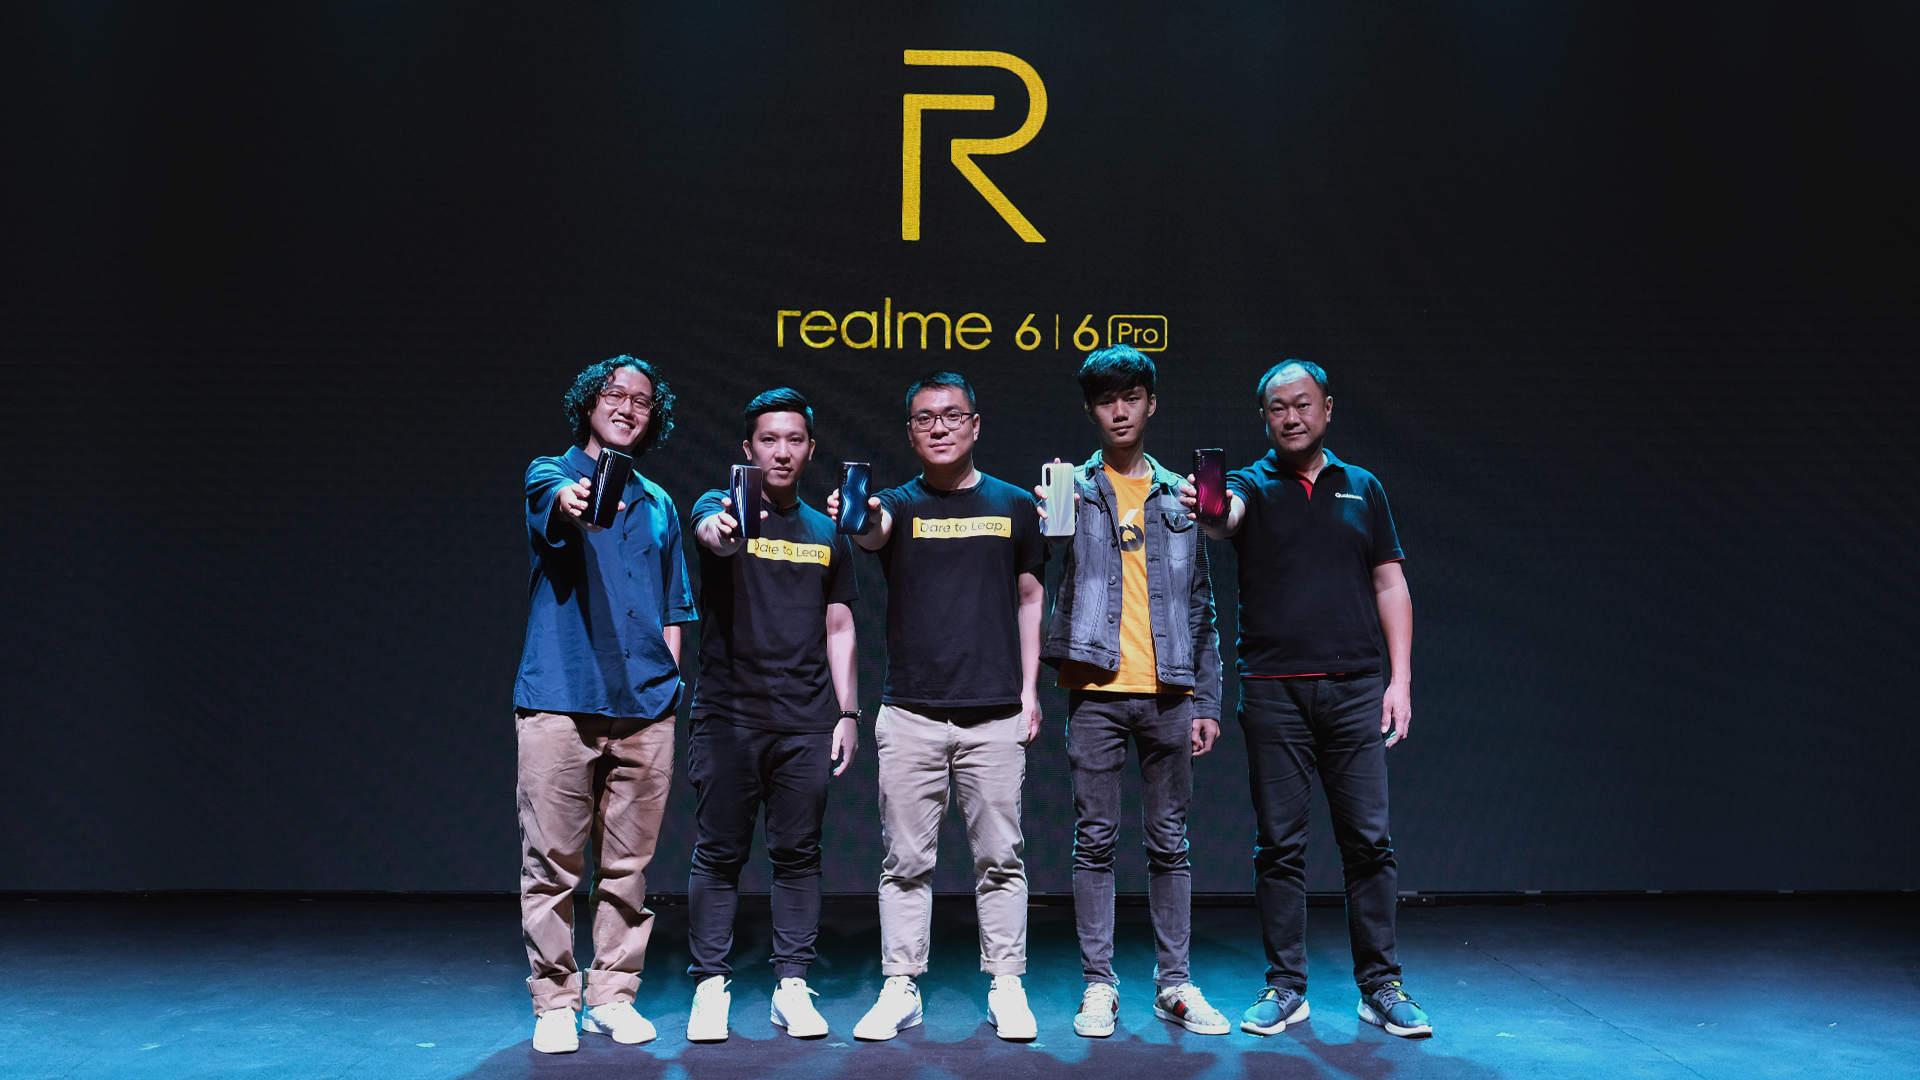 Andre Wiredja, Felix Christian (Product Manager realme Indonesia), Palson Yi (Marketing Director realme Indonesia), Dominikus Susanto (Senior Manager Business Development Qualcomm Indonesia)